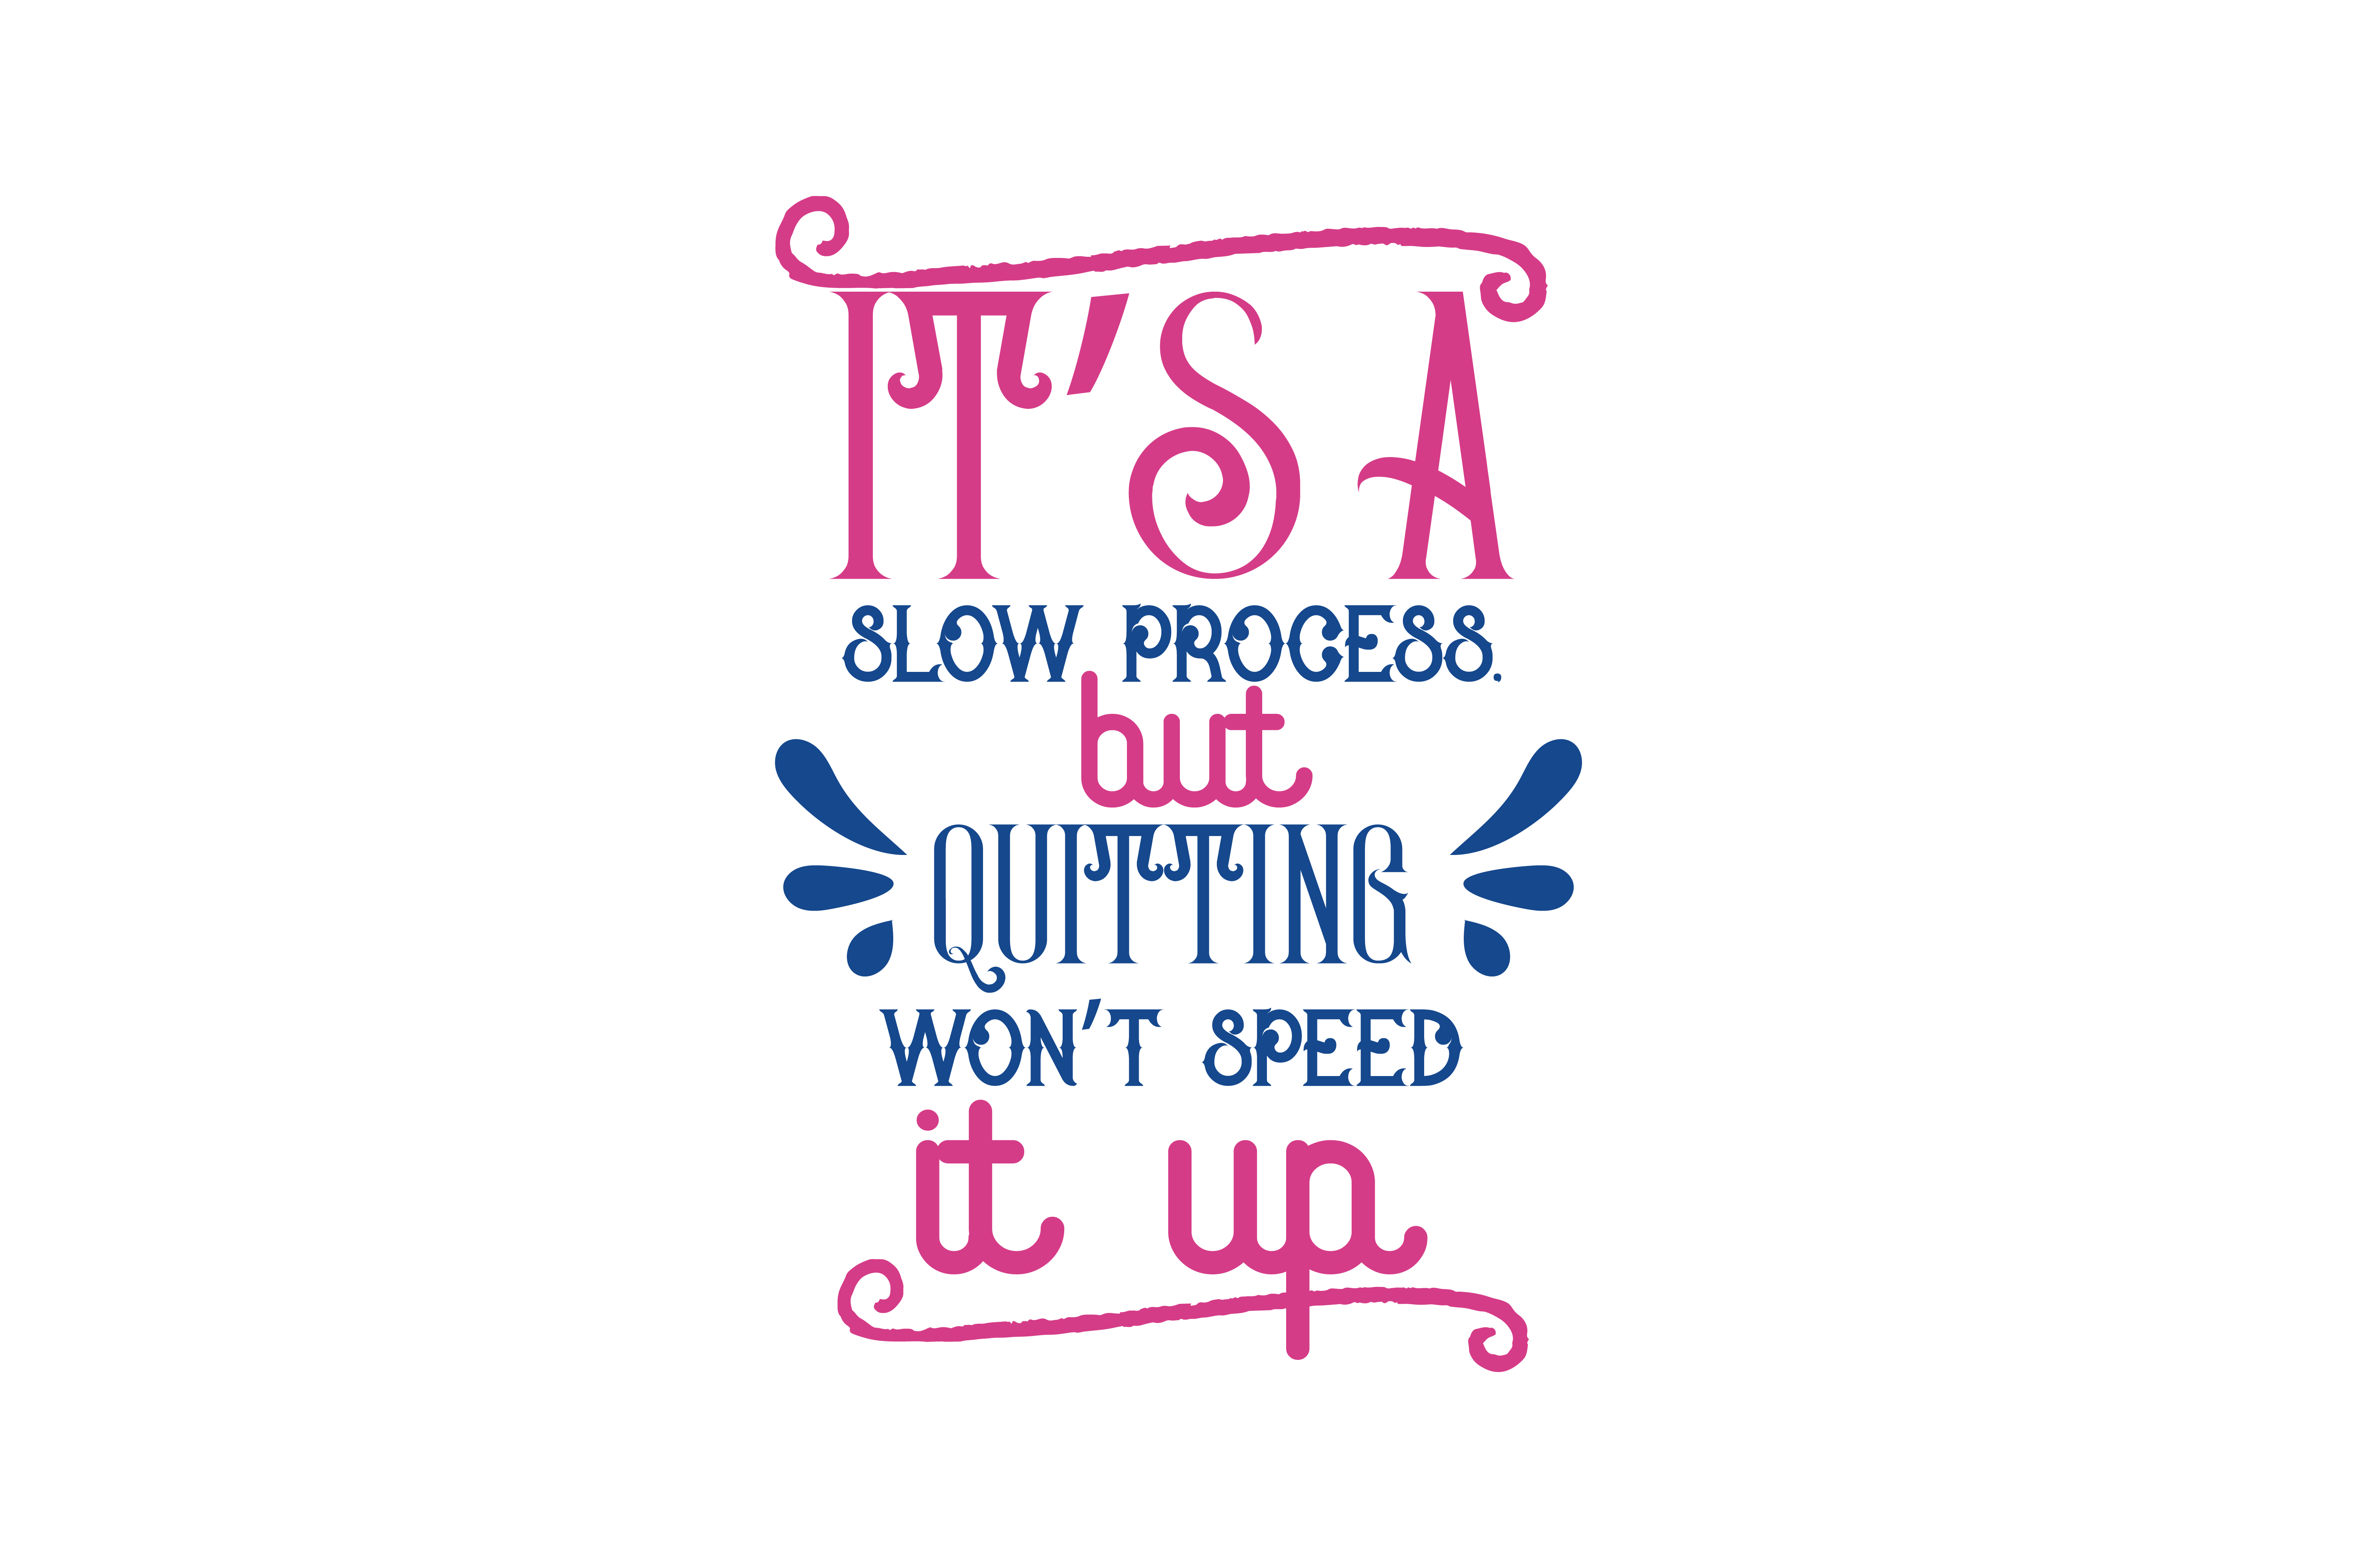 It's a slow process, but quitting won't speed it up Quote SVG Cut